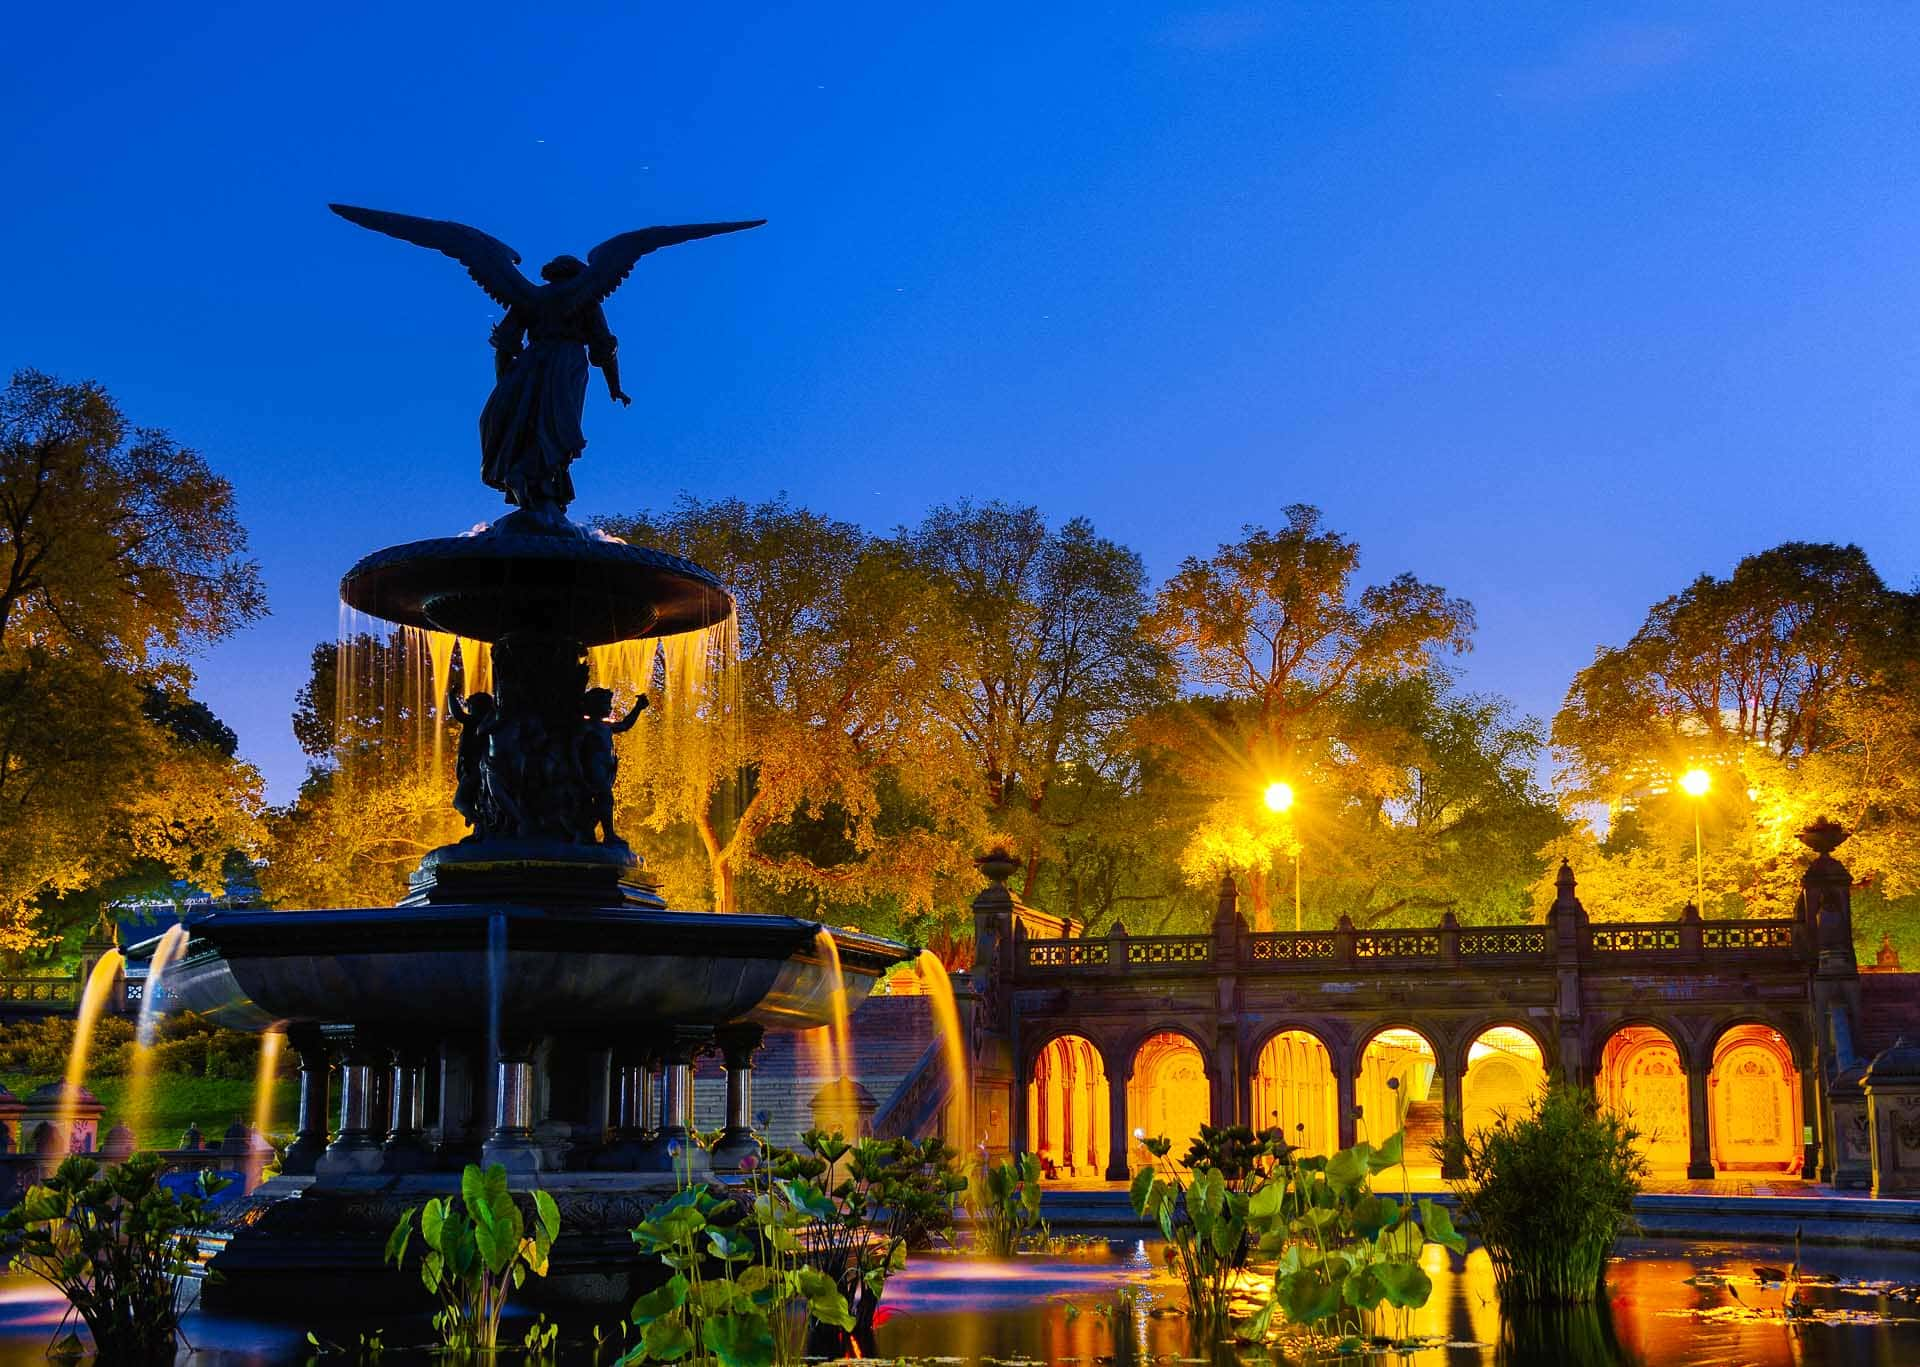 Bethesda Fountain at night in New York City's Central Park